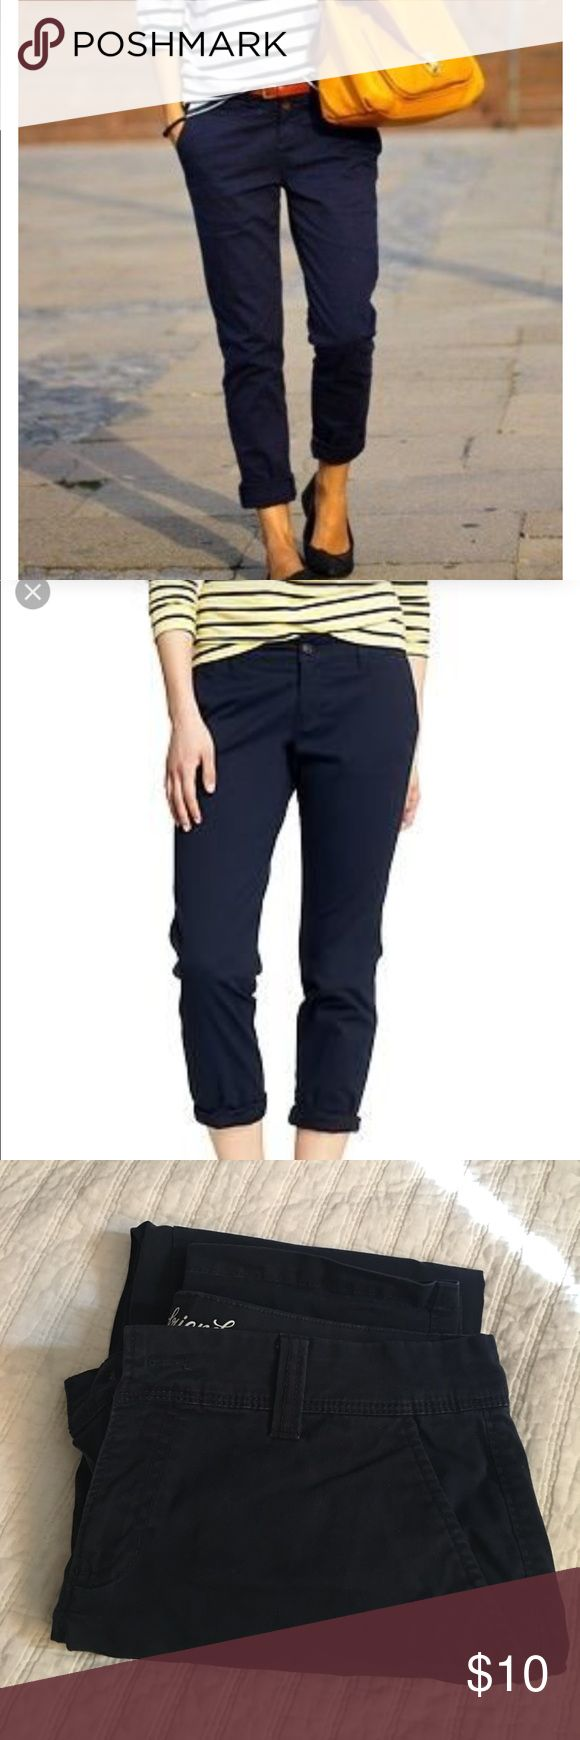 """Old Navy Boyfriend Cropped Chino in Navy size 6 Old Navy Boyfriend Cropped Chino in Navy size 6. 26"""" inseam. Definitely wore these a lot, they're super cute. They just don't fit anymore. But the Navy is still nice a dark. Old Navy Pants Ankle & Cropped"""